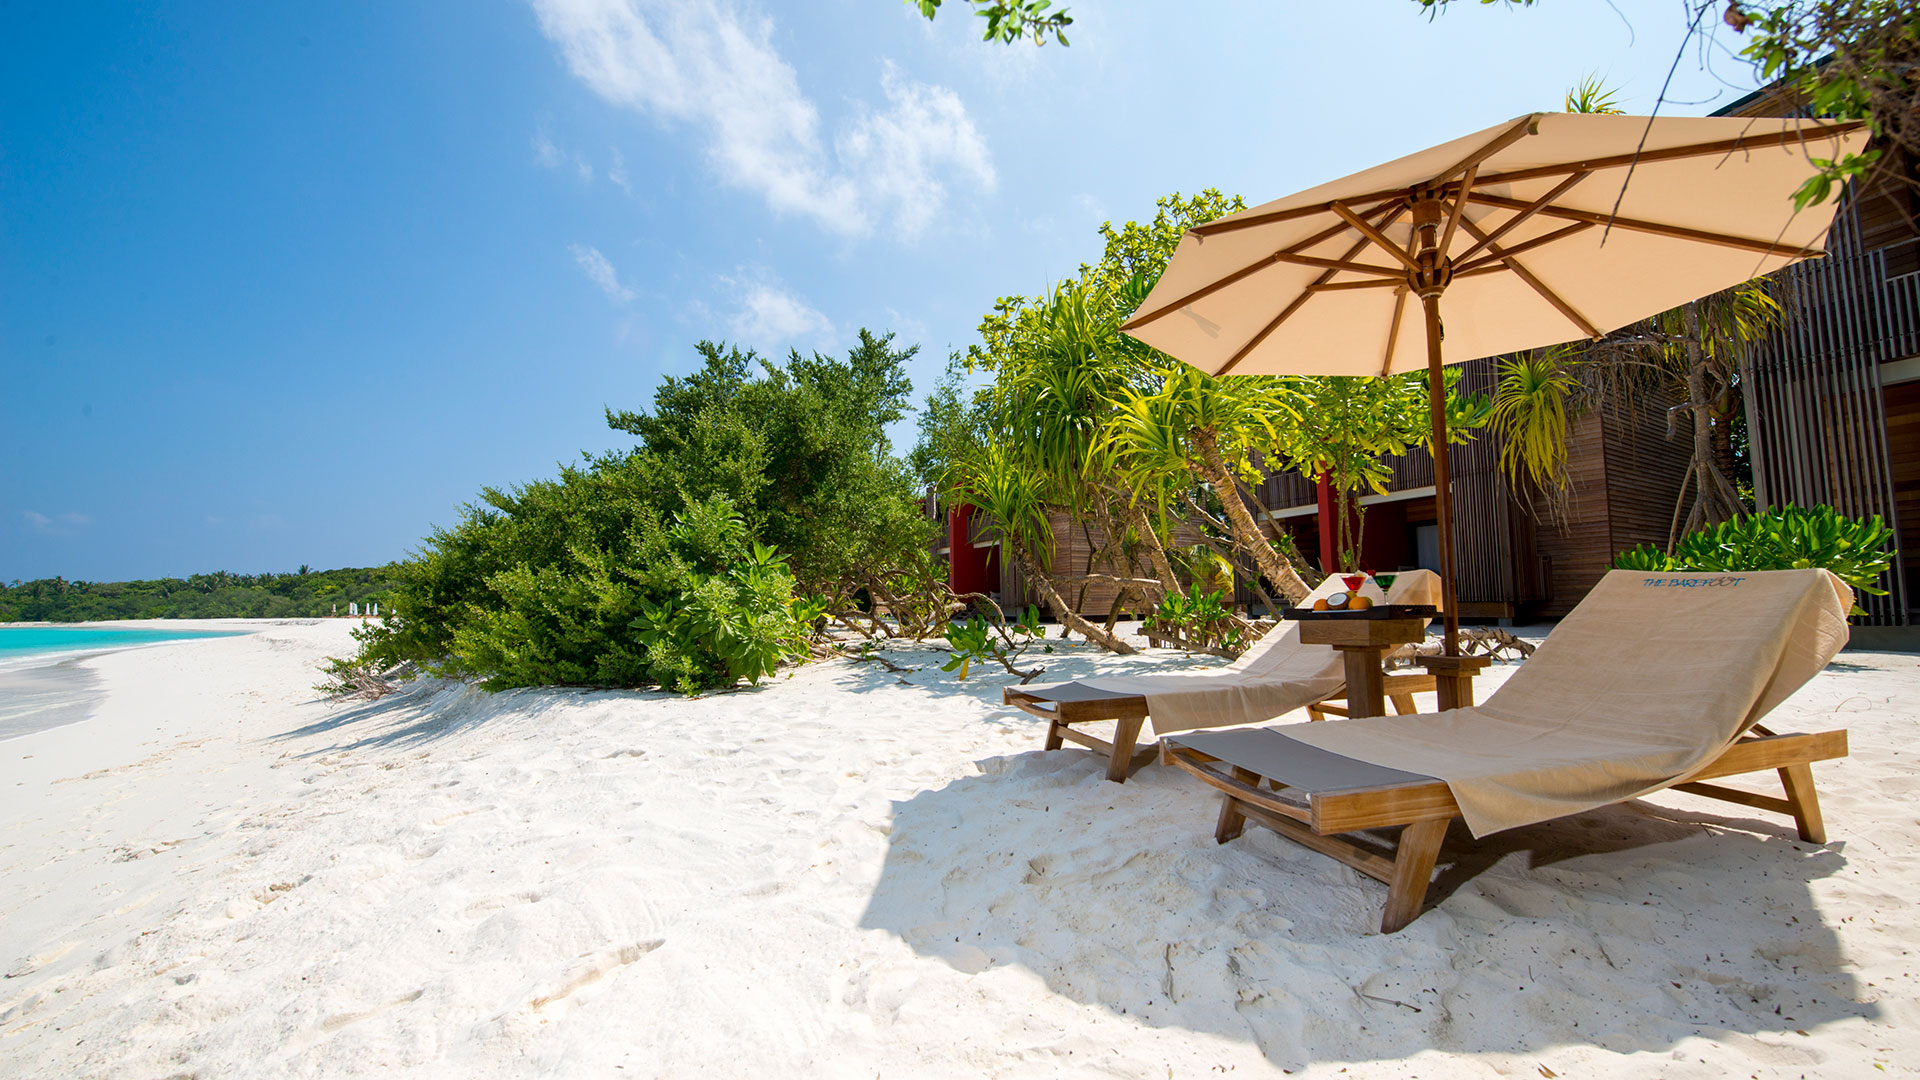 spiaggia-The-Barefoot-eco-hotel